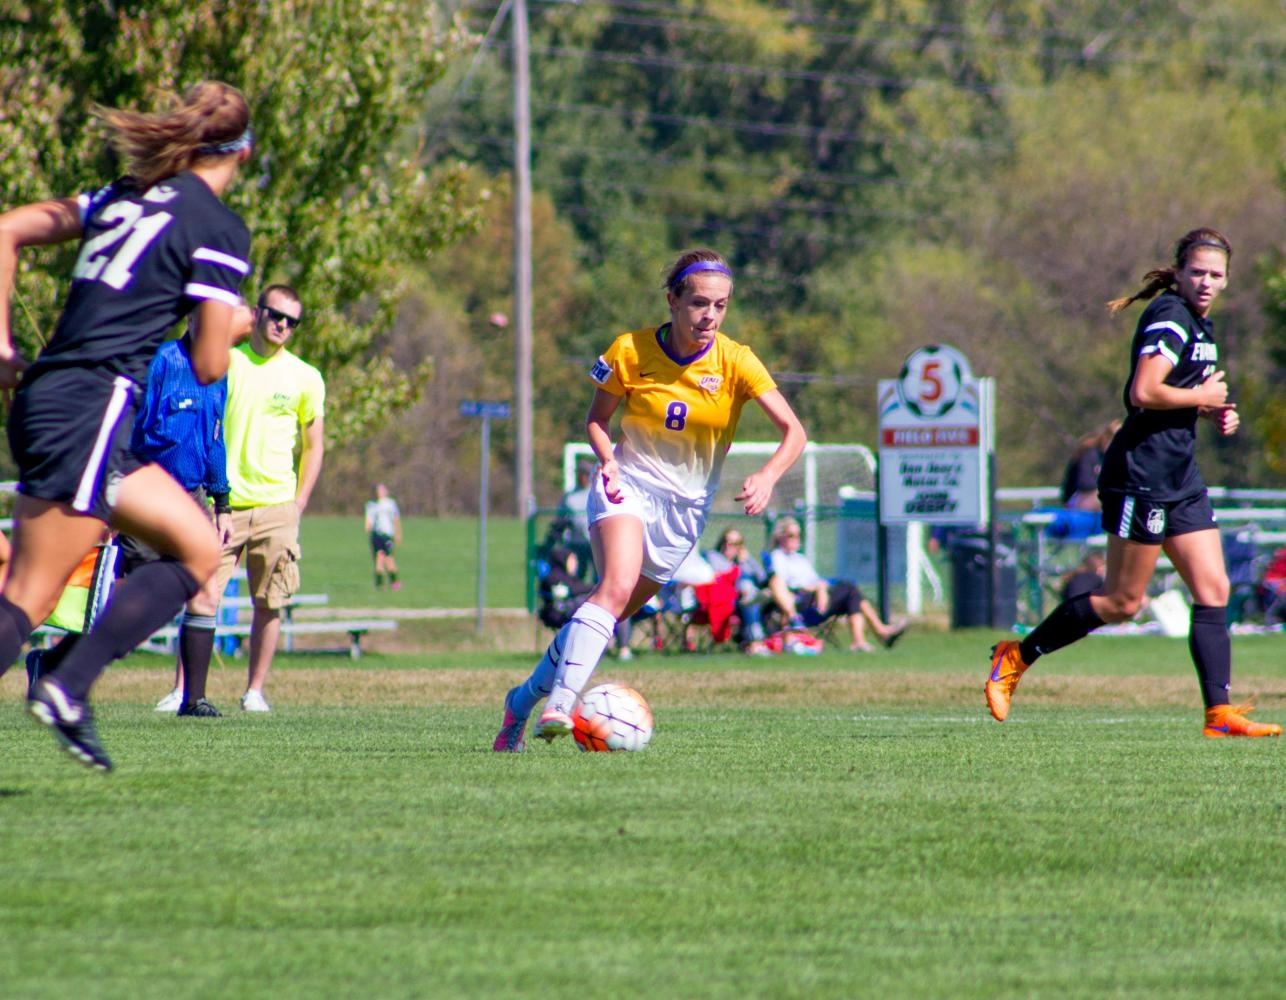 Hannah McDevitt (8) dribbles and looks to score.